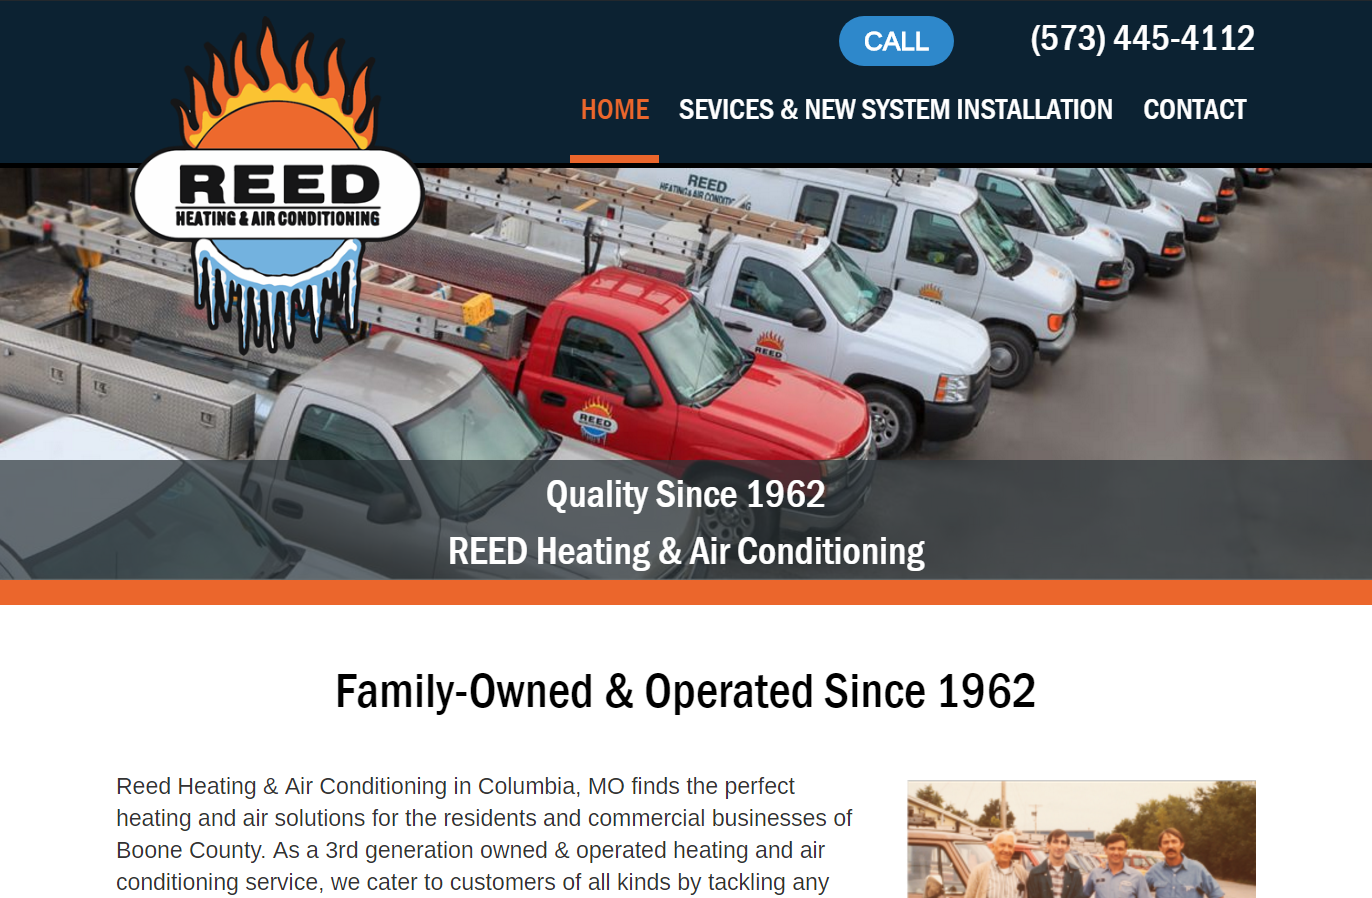 Reed Heating & Air Conditioning's new website